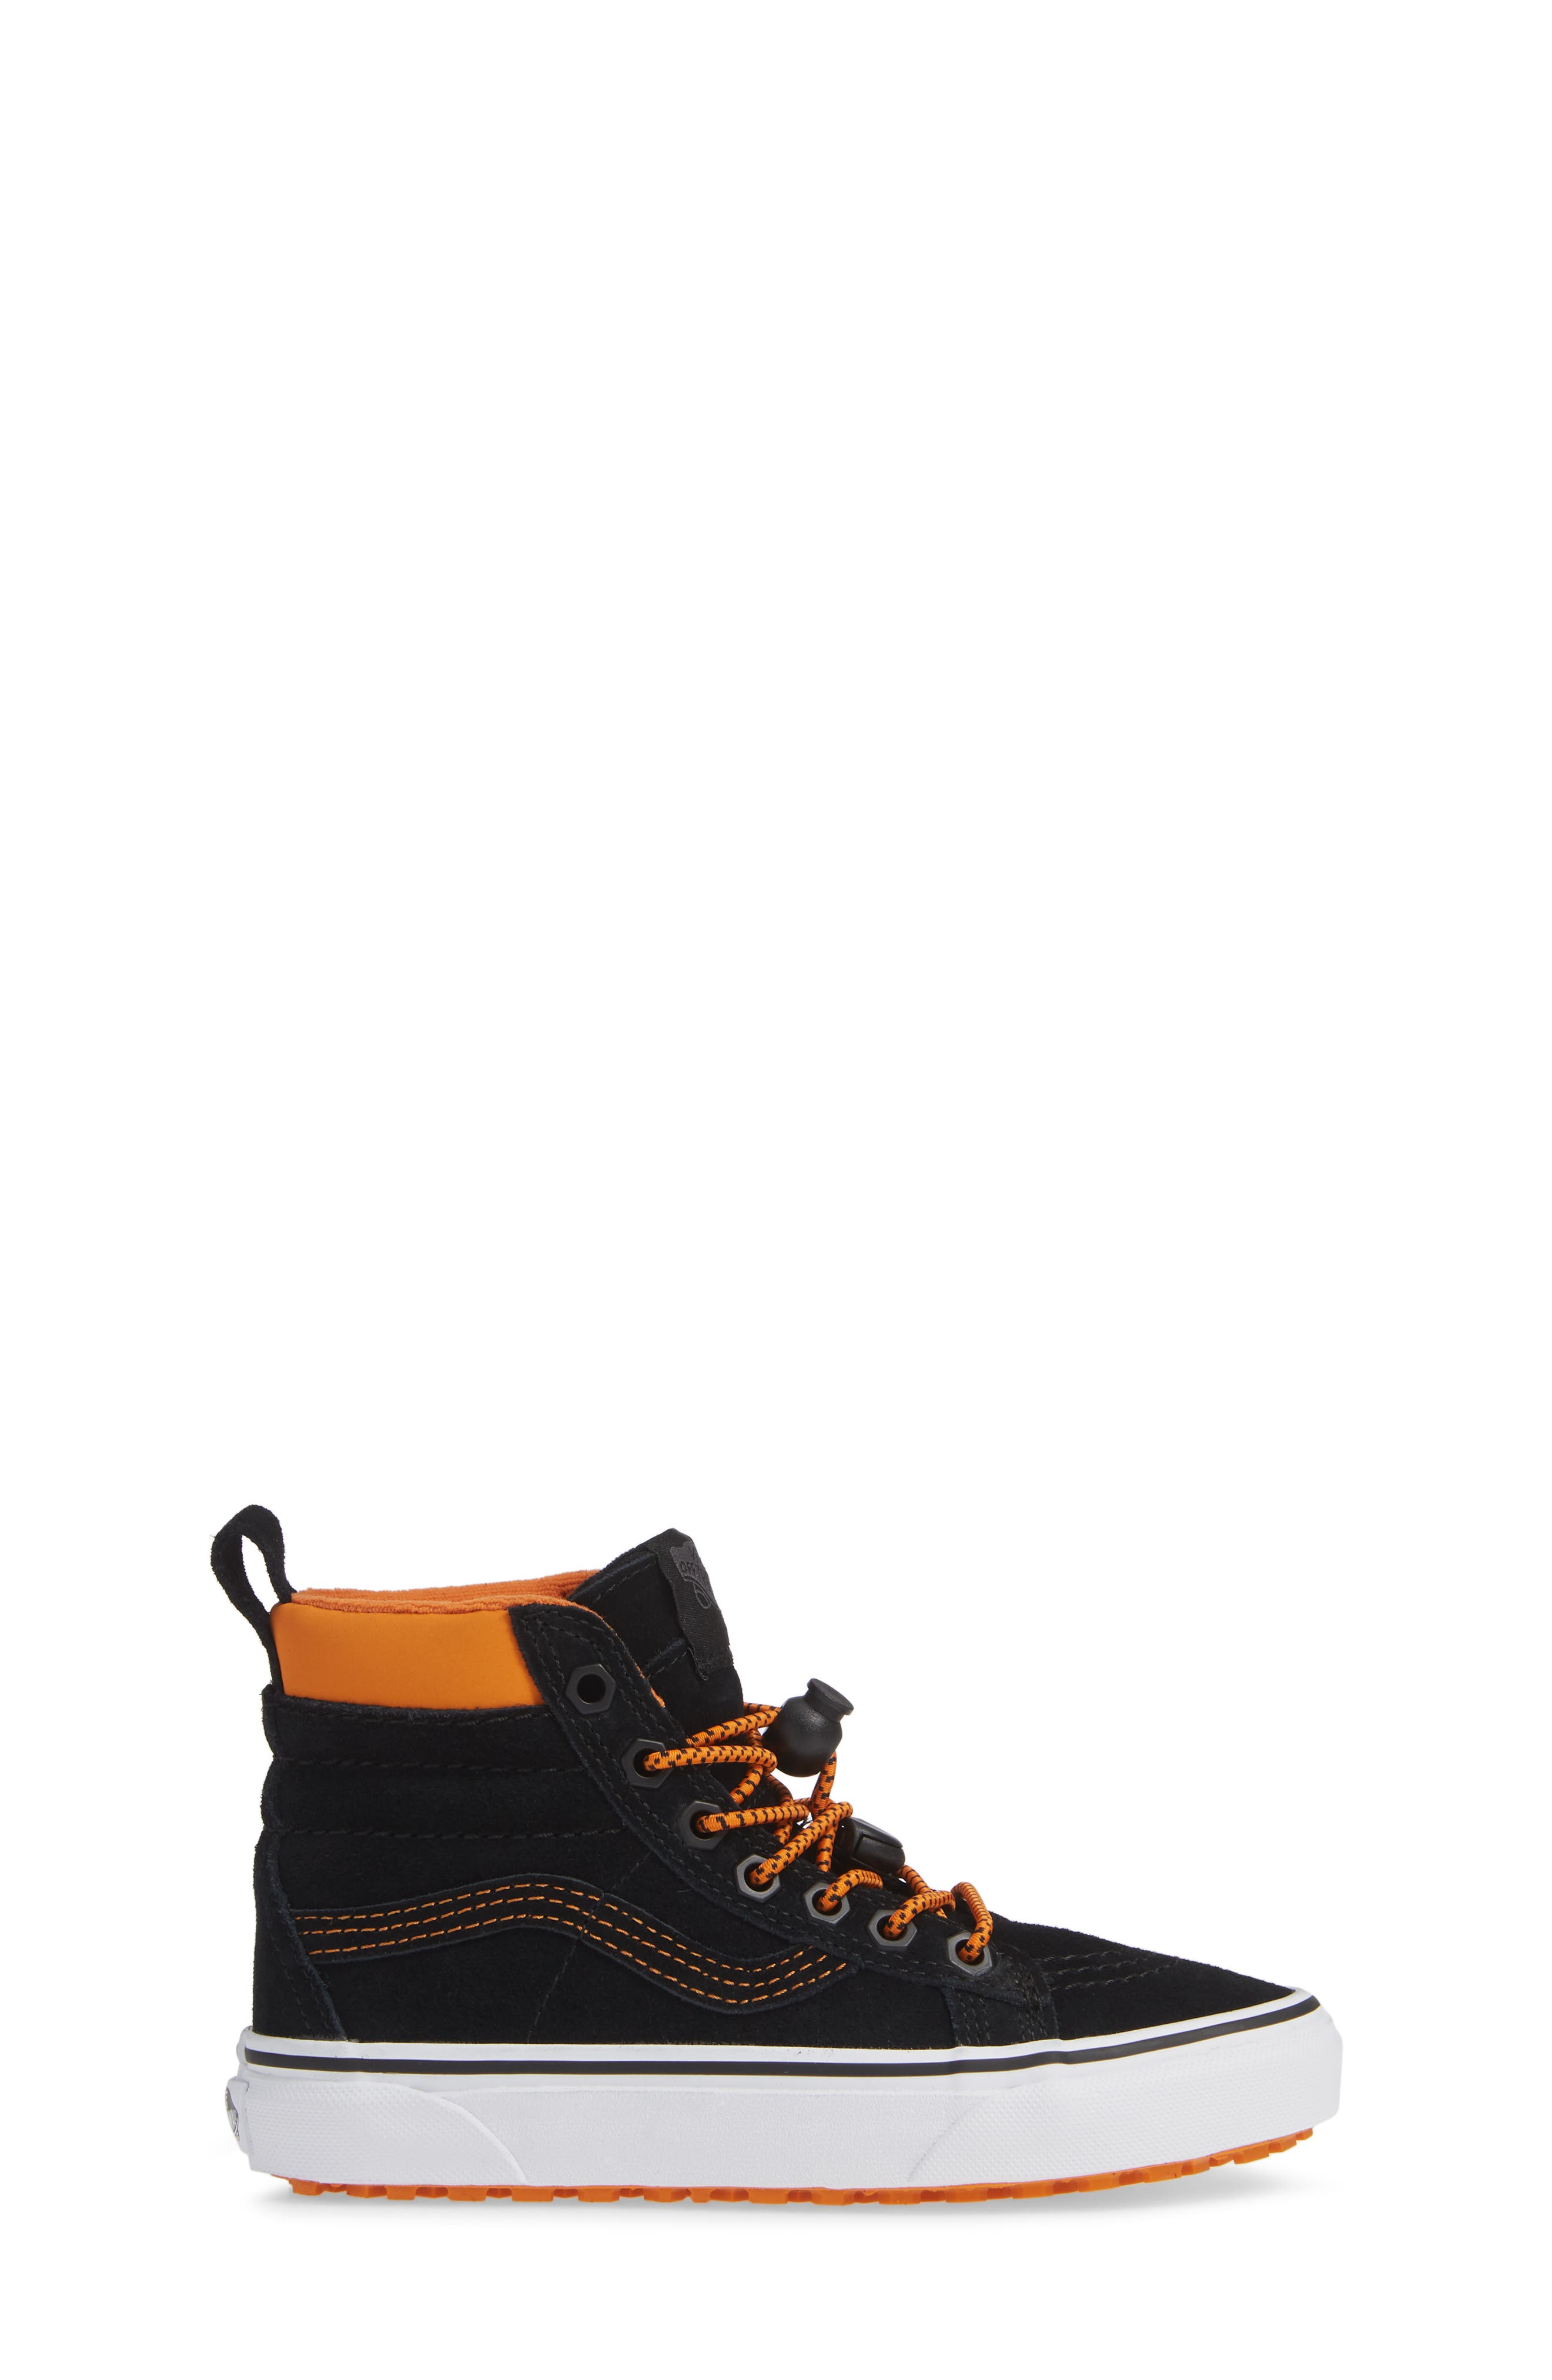 SK8-Hi Sneaker,                             Alternate thumbnail 21, color,